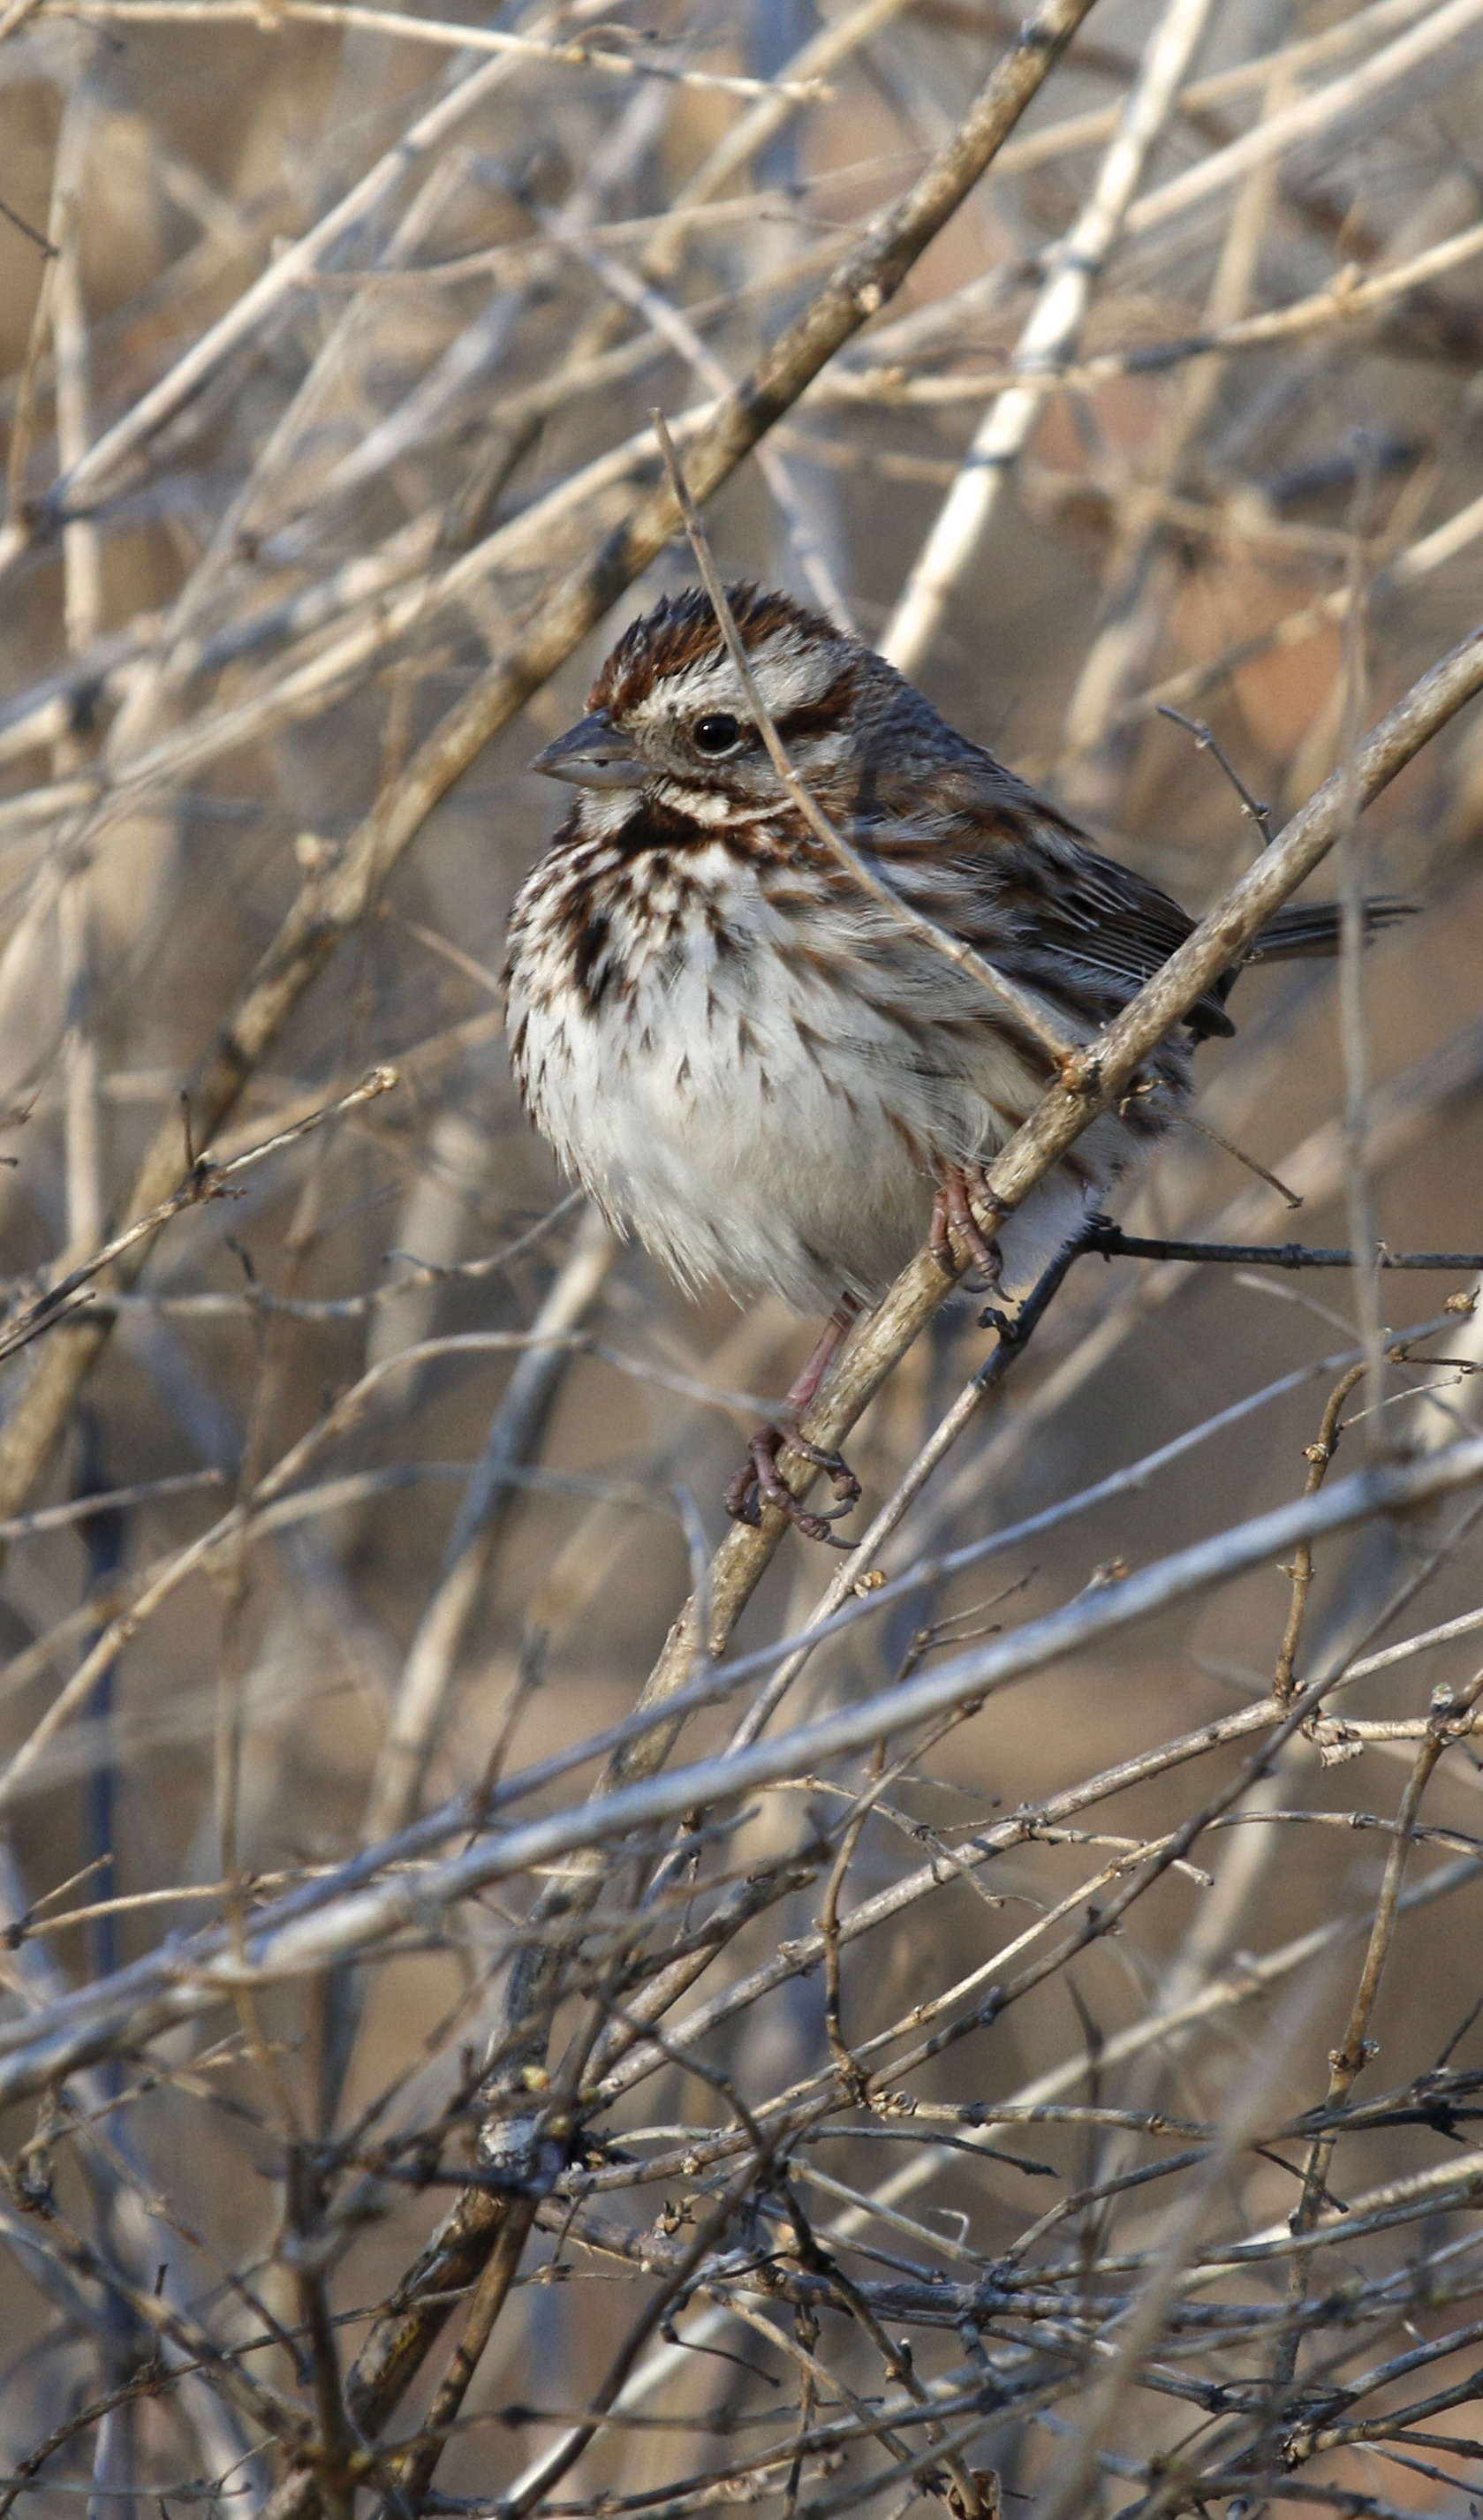 ~Song Sparrow in nice evening light, 6 1/2 Station Road Sanctuary, 4/1/15.~